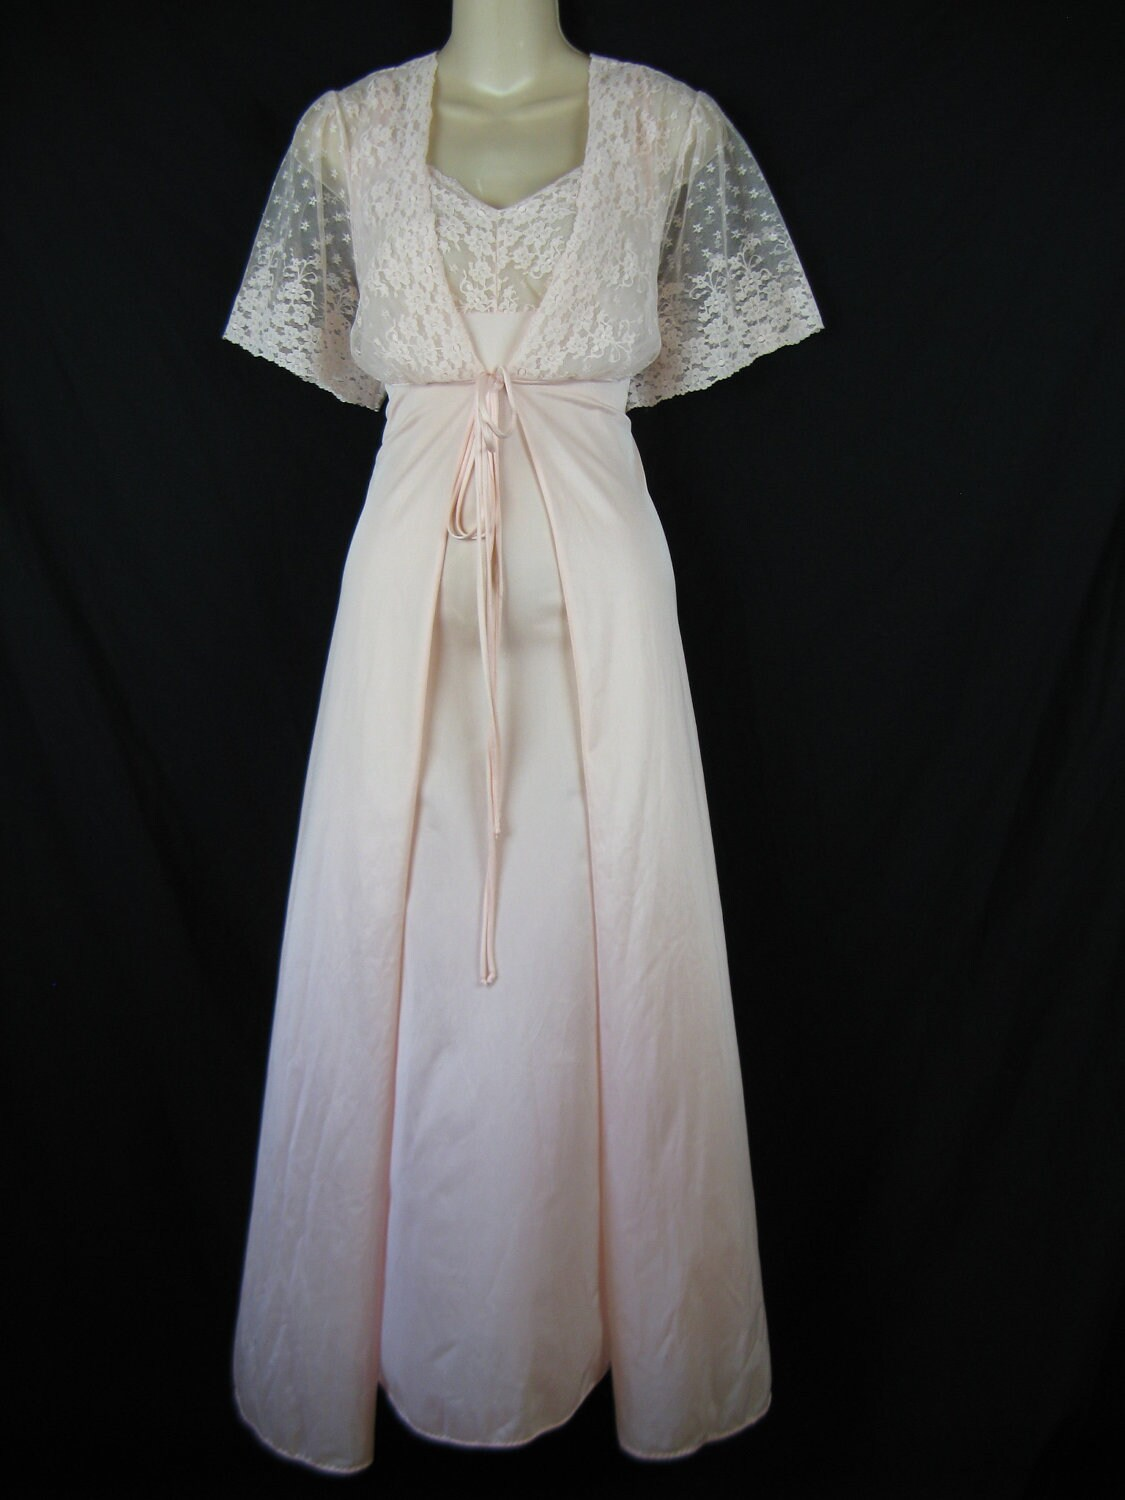 Lace Peignoir Set 1970 S Pink Lace Wedding Nightgown And